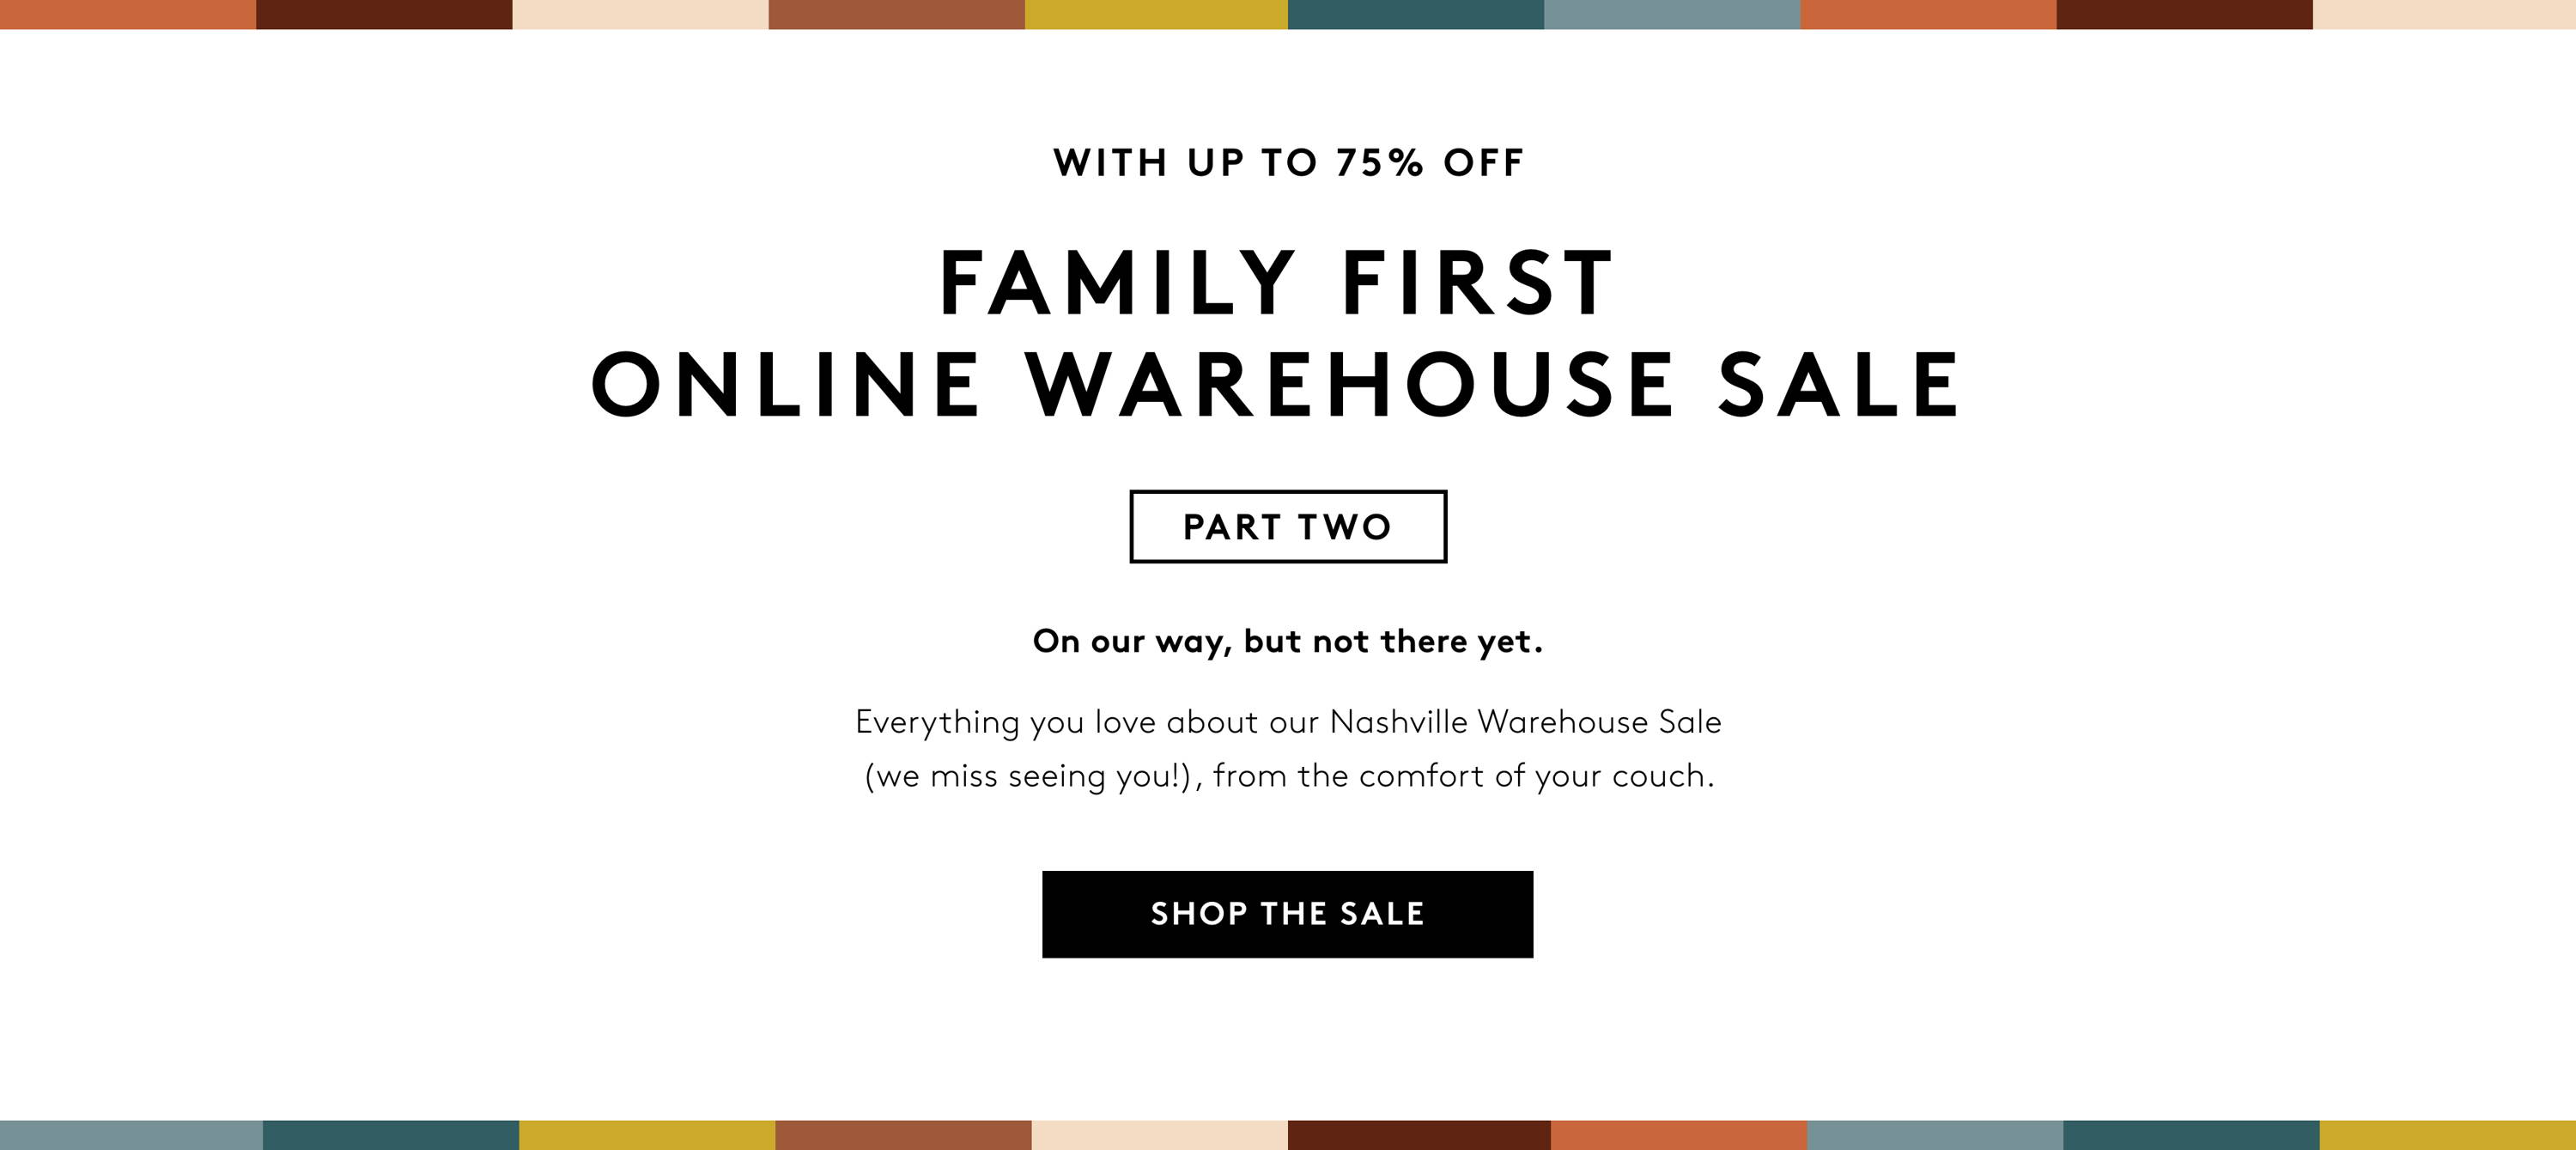 Family First Online Warehouse Sale